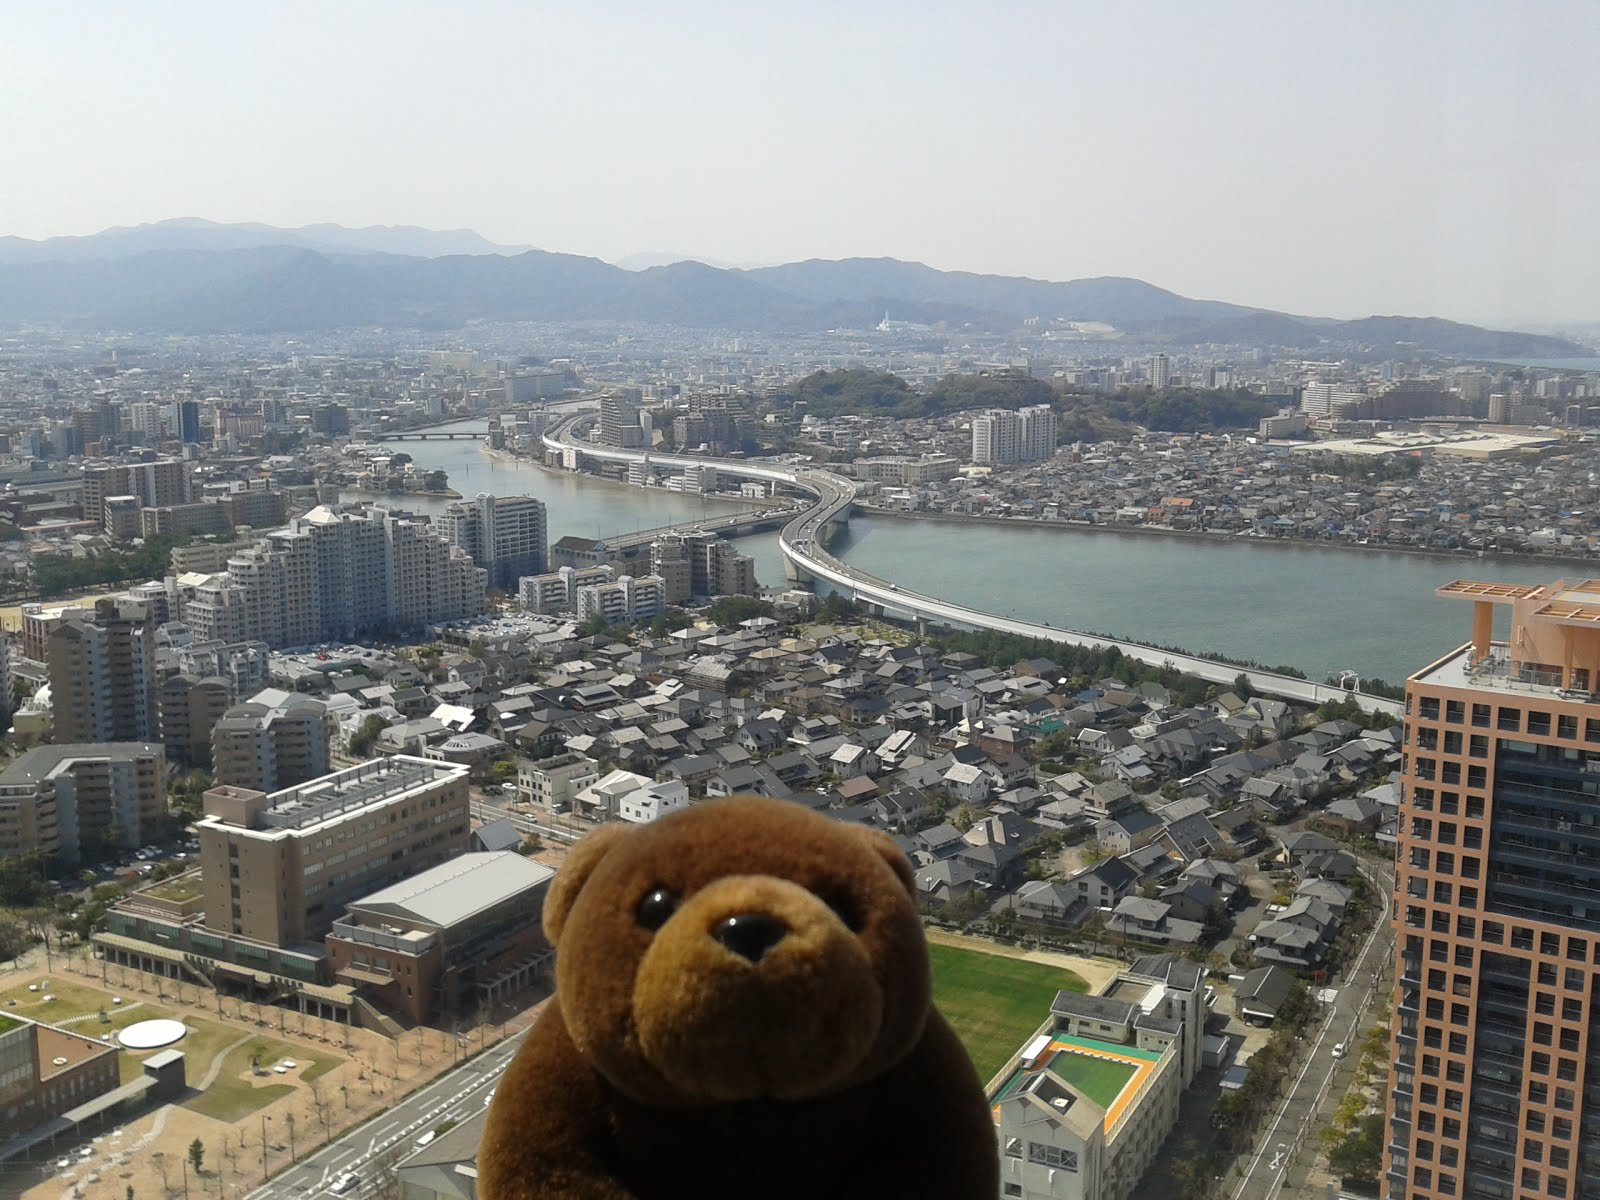 Teddy on top of Fukuoka tower